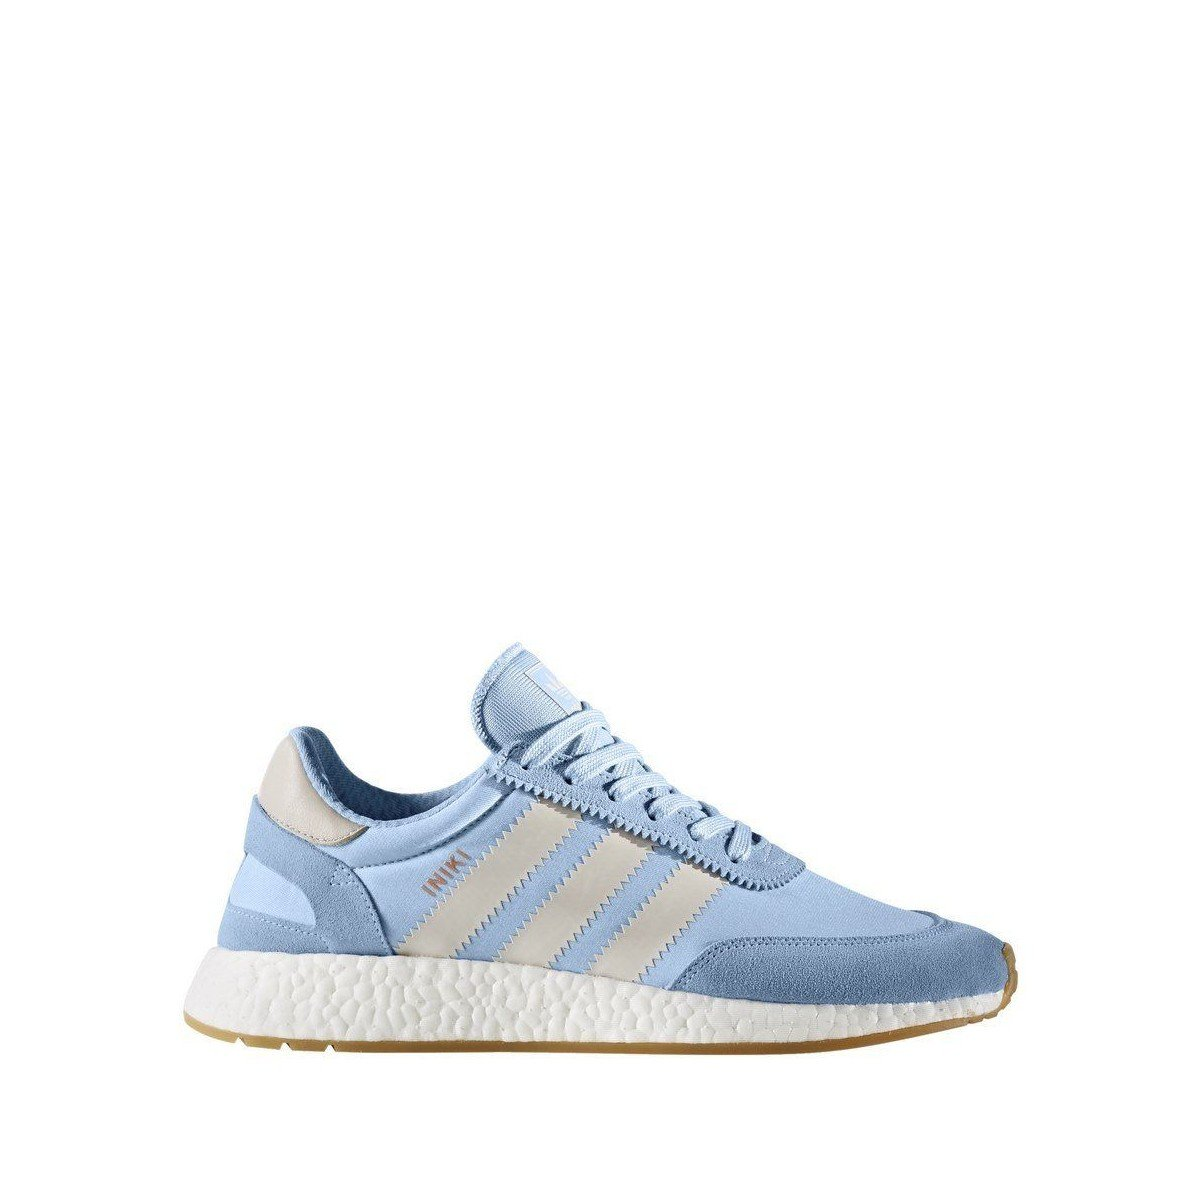 Men's/Women's adidas Men''s Iniki Runner Low-Top Sneakers Sneakers Sneakers sell First batch of customers Tide shoes list 1c6dca